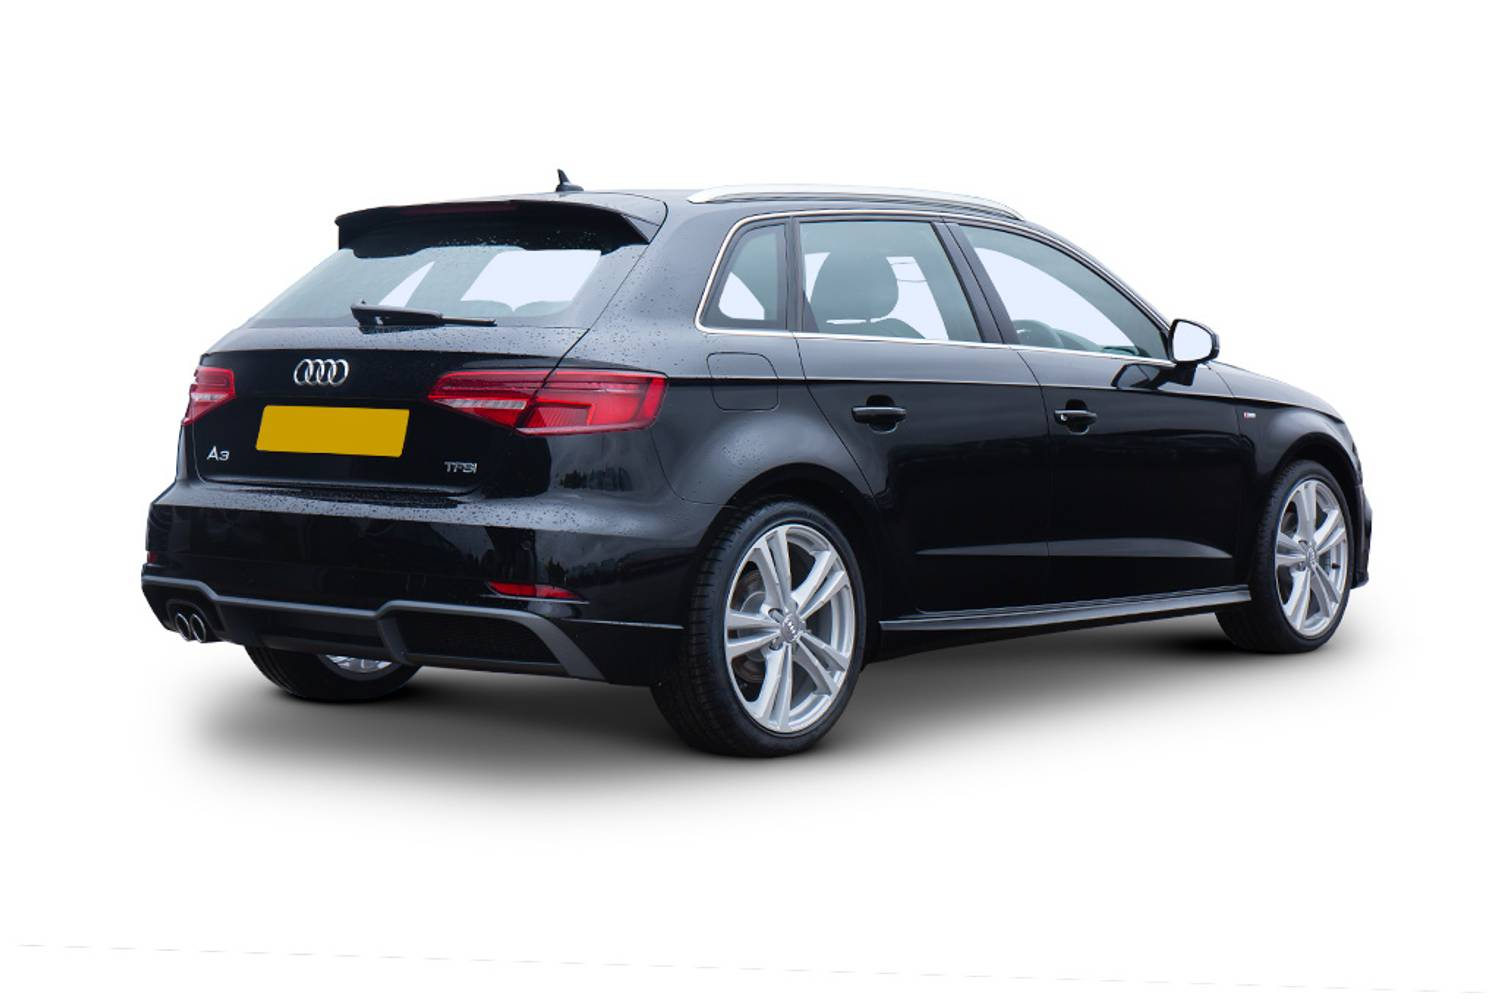 new audi a3 sportback 1 0 tfsi sport 5 door s tronic 2016 for sale. Black Bedroom Furniture Sets. Home Design Ideas